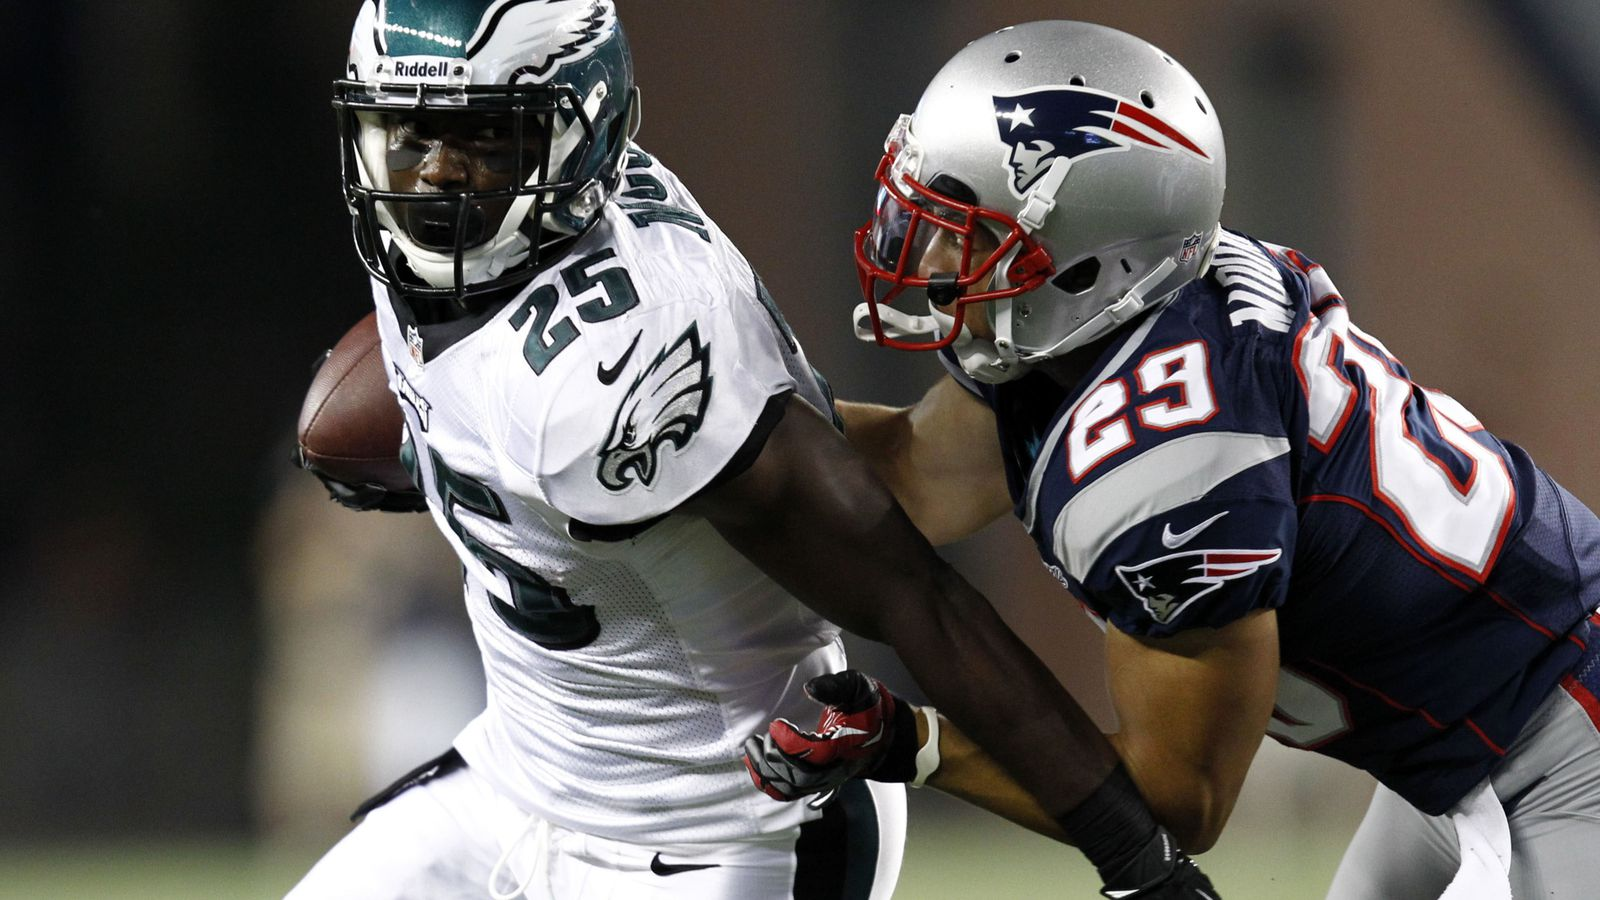 Patriots preseason schedule: Dates, times, and opponents ...